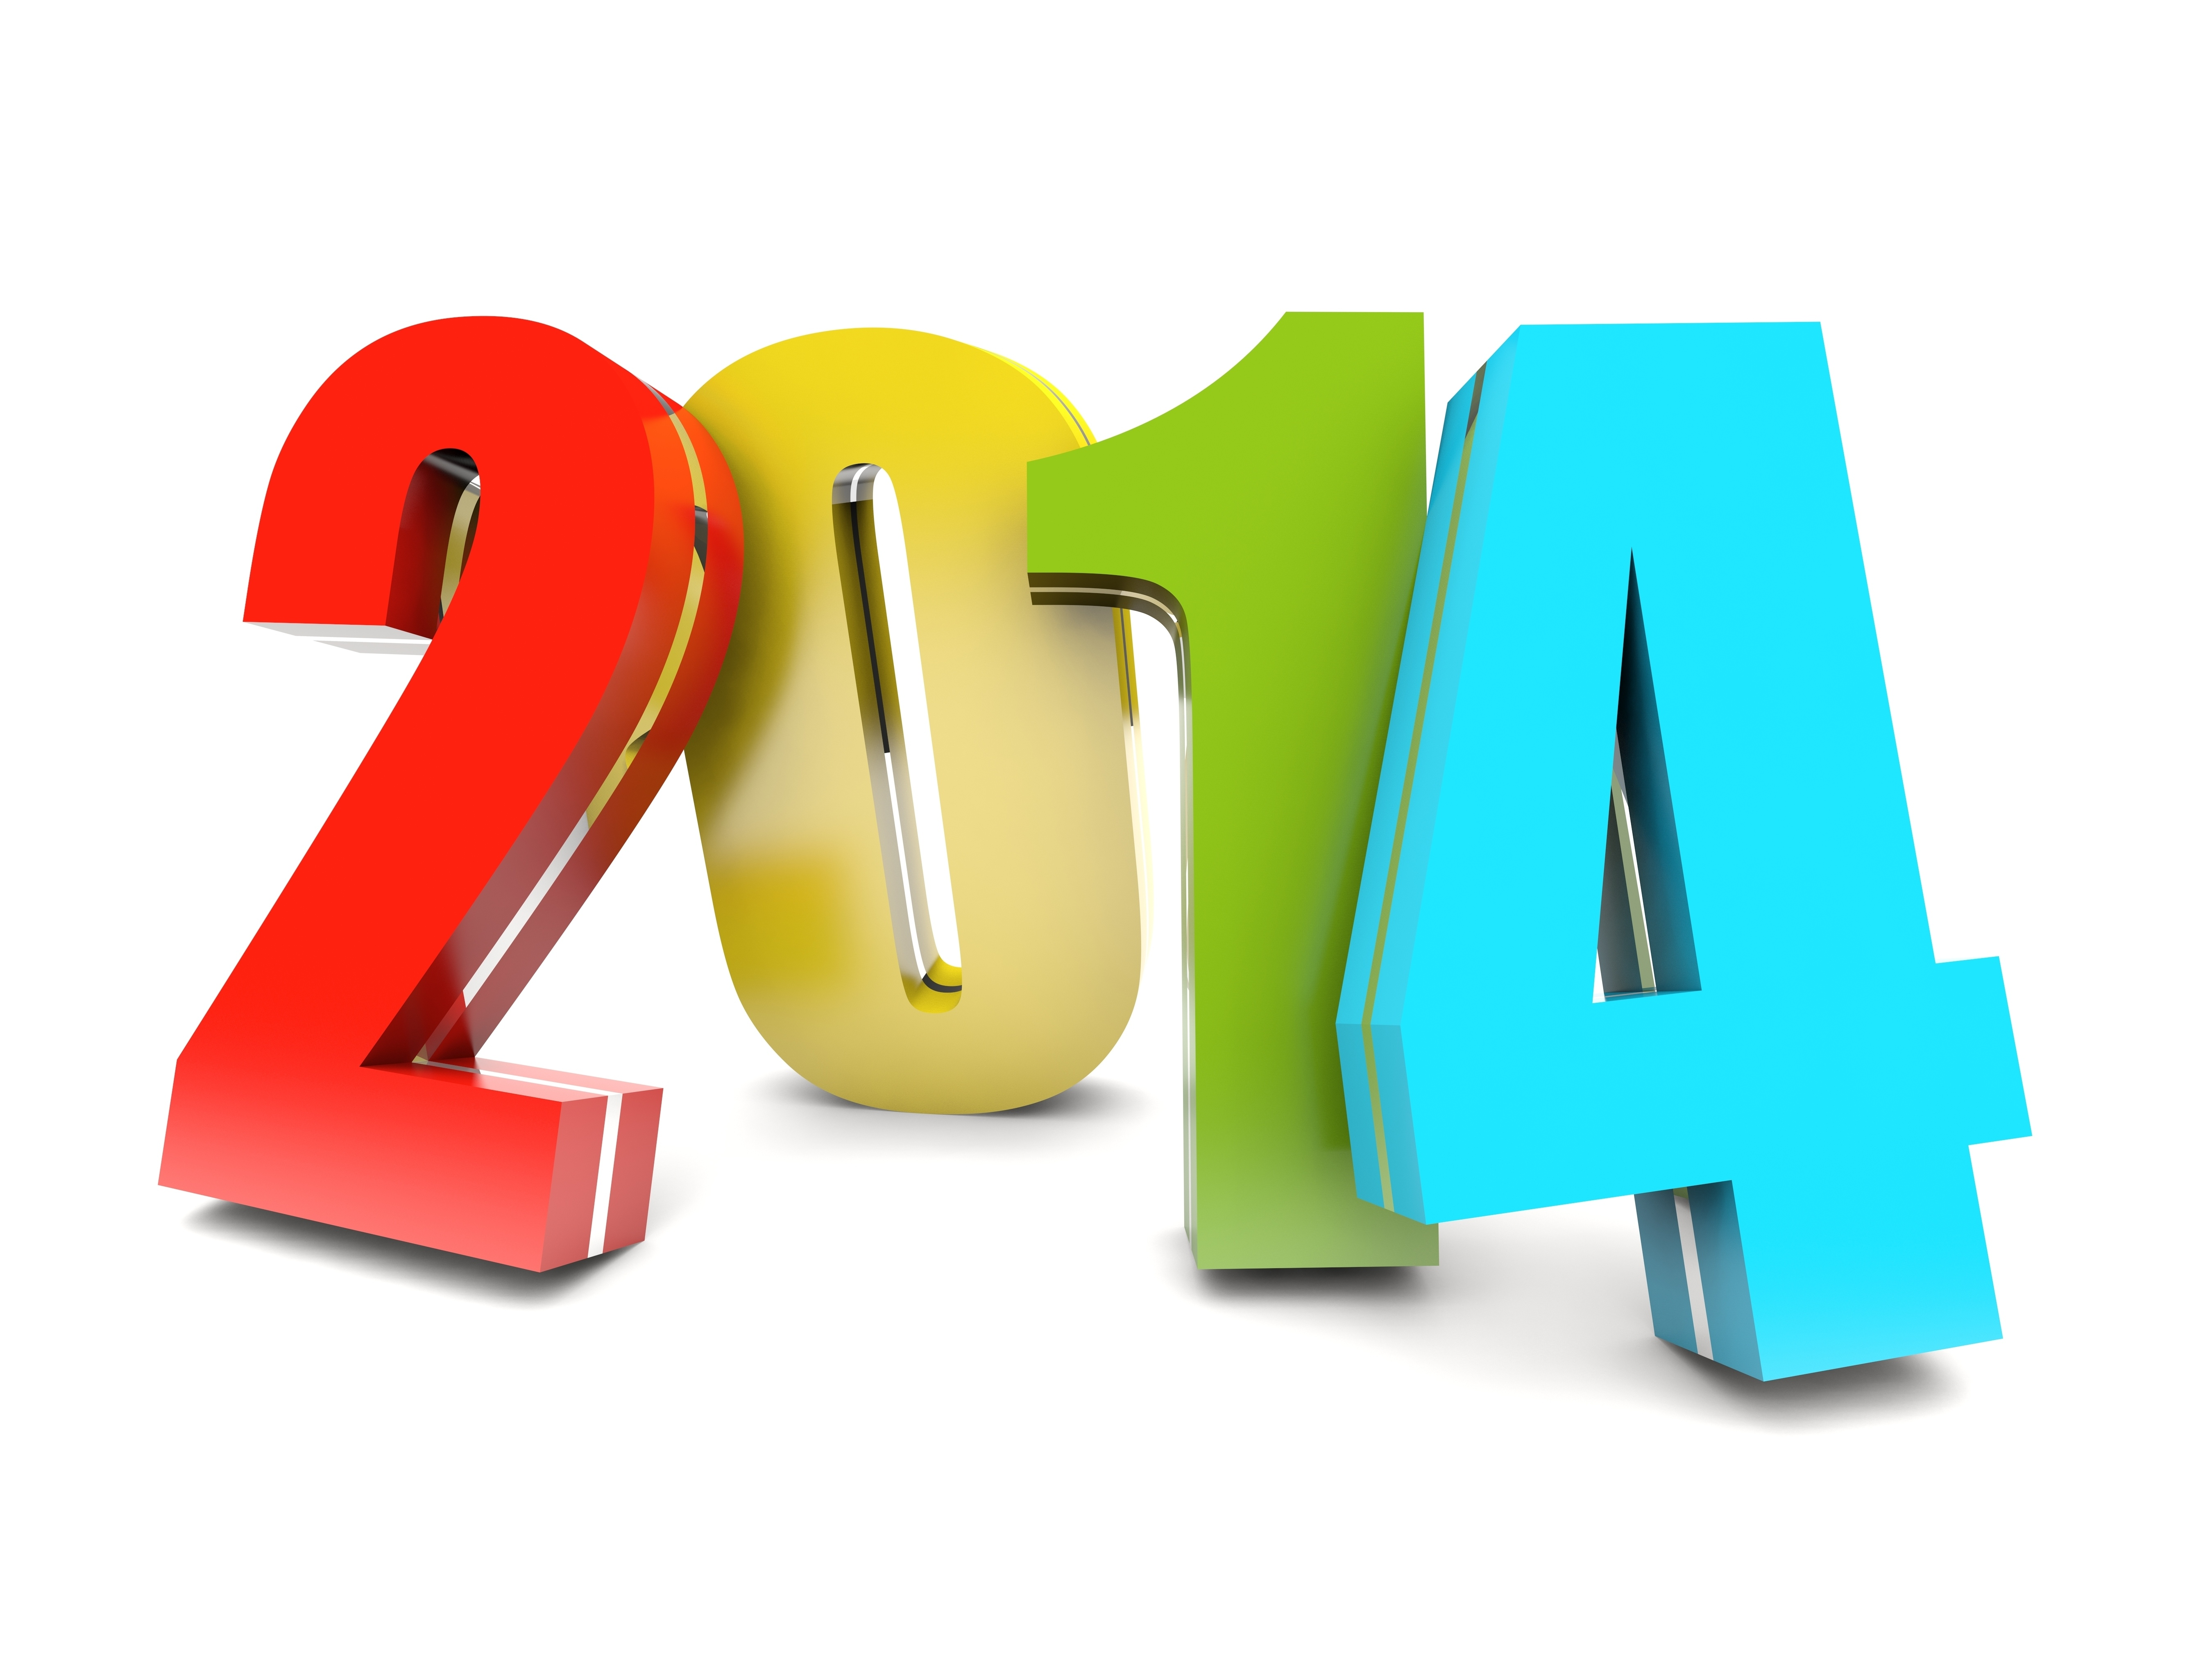 2014 is here, what are you up to?